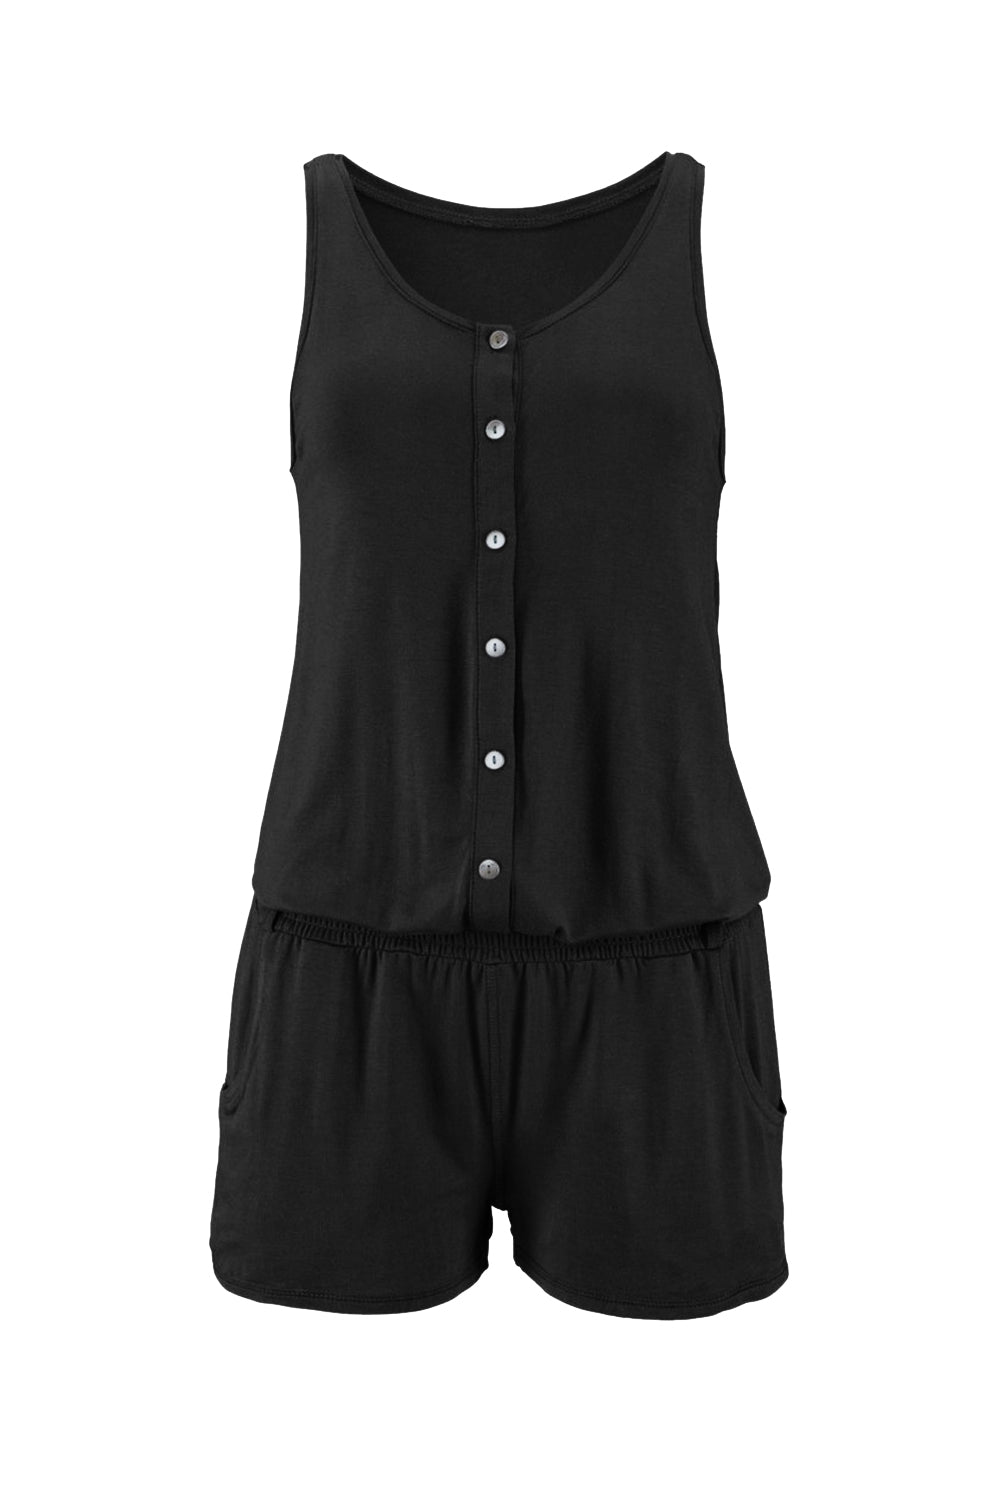 Solid Color Sleeveless Button jumpsuit in Black